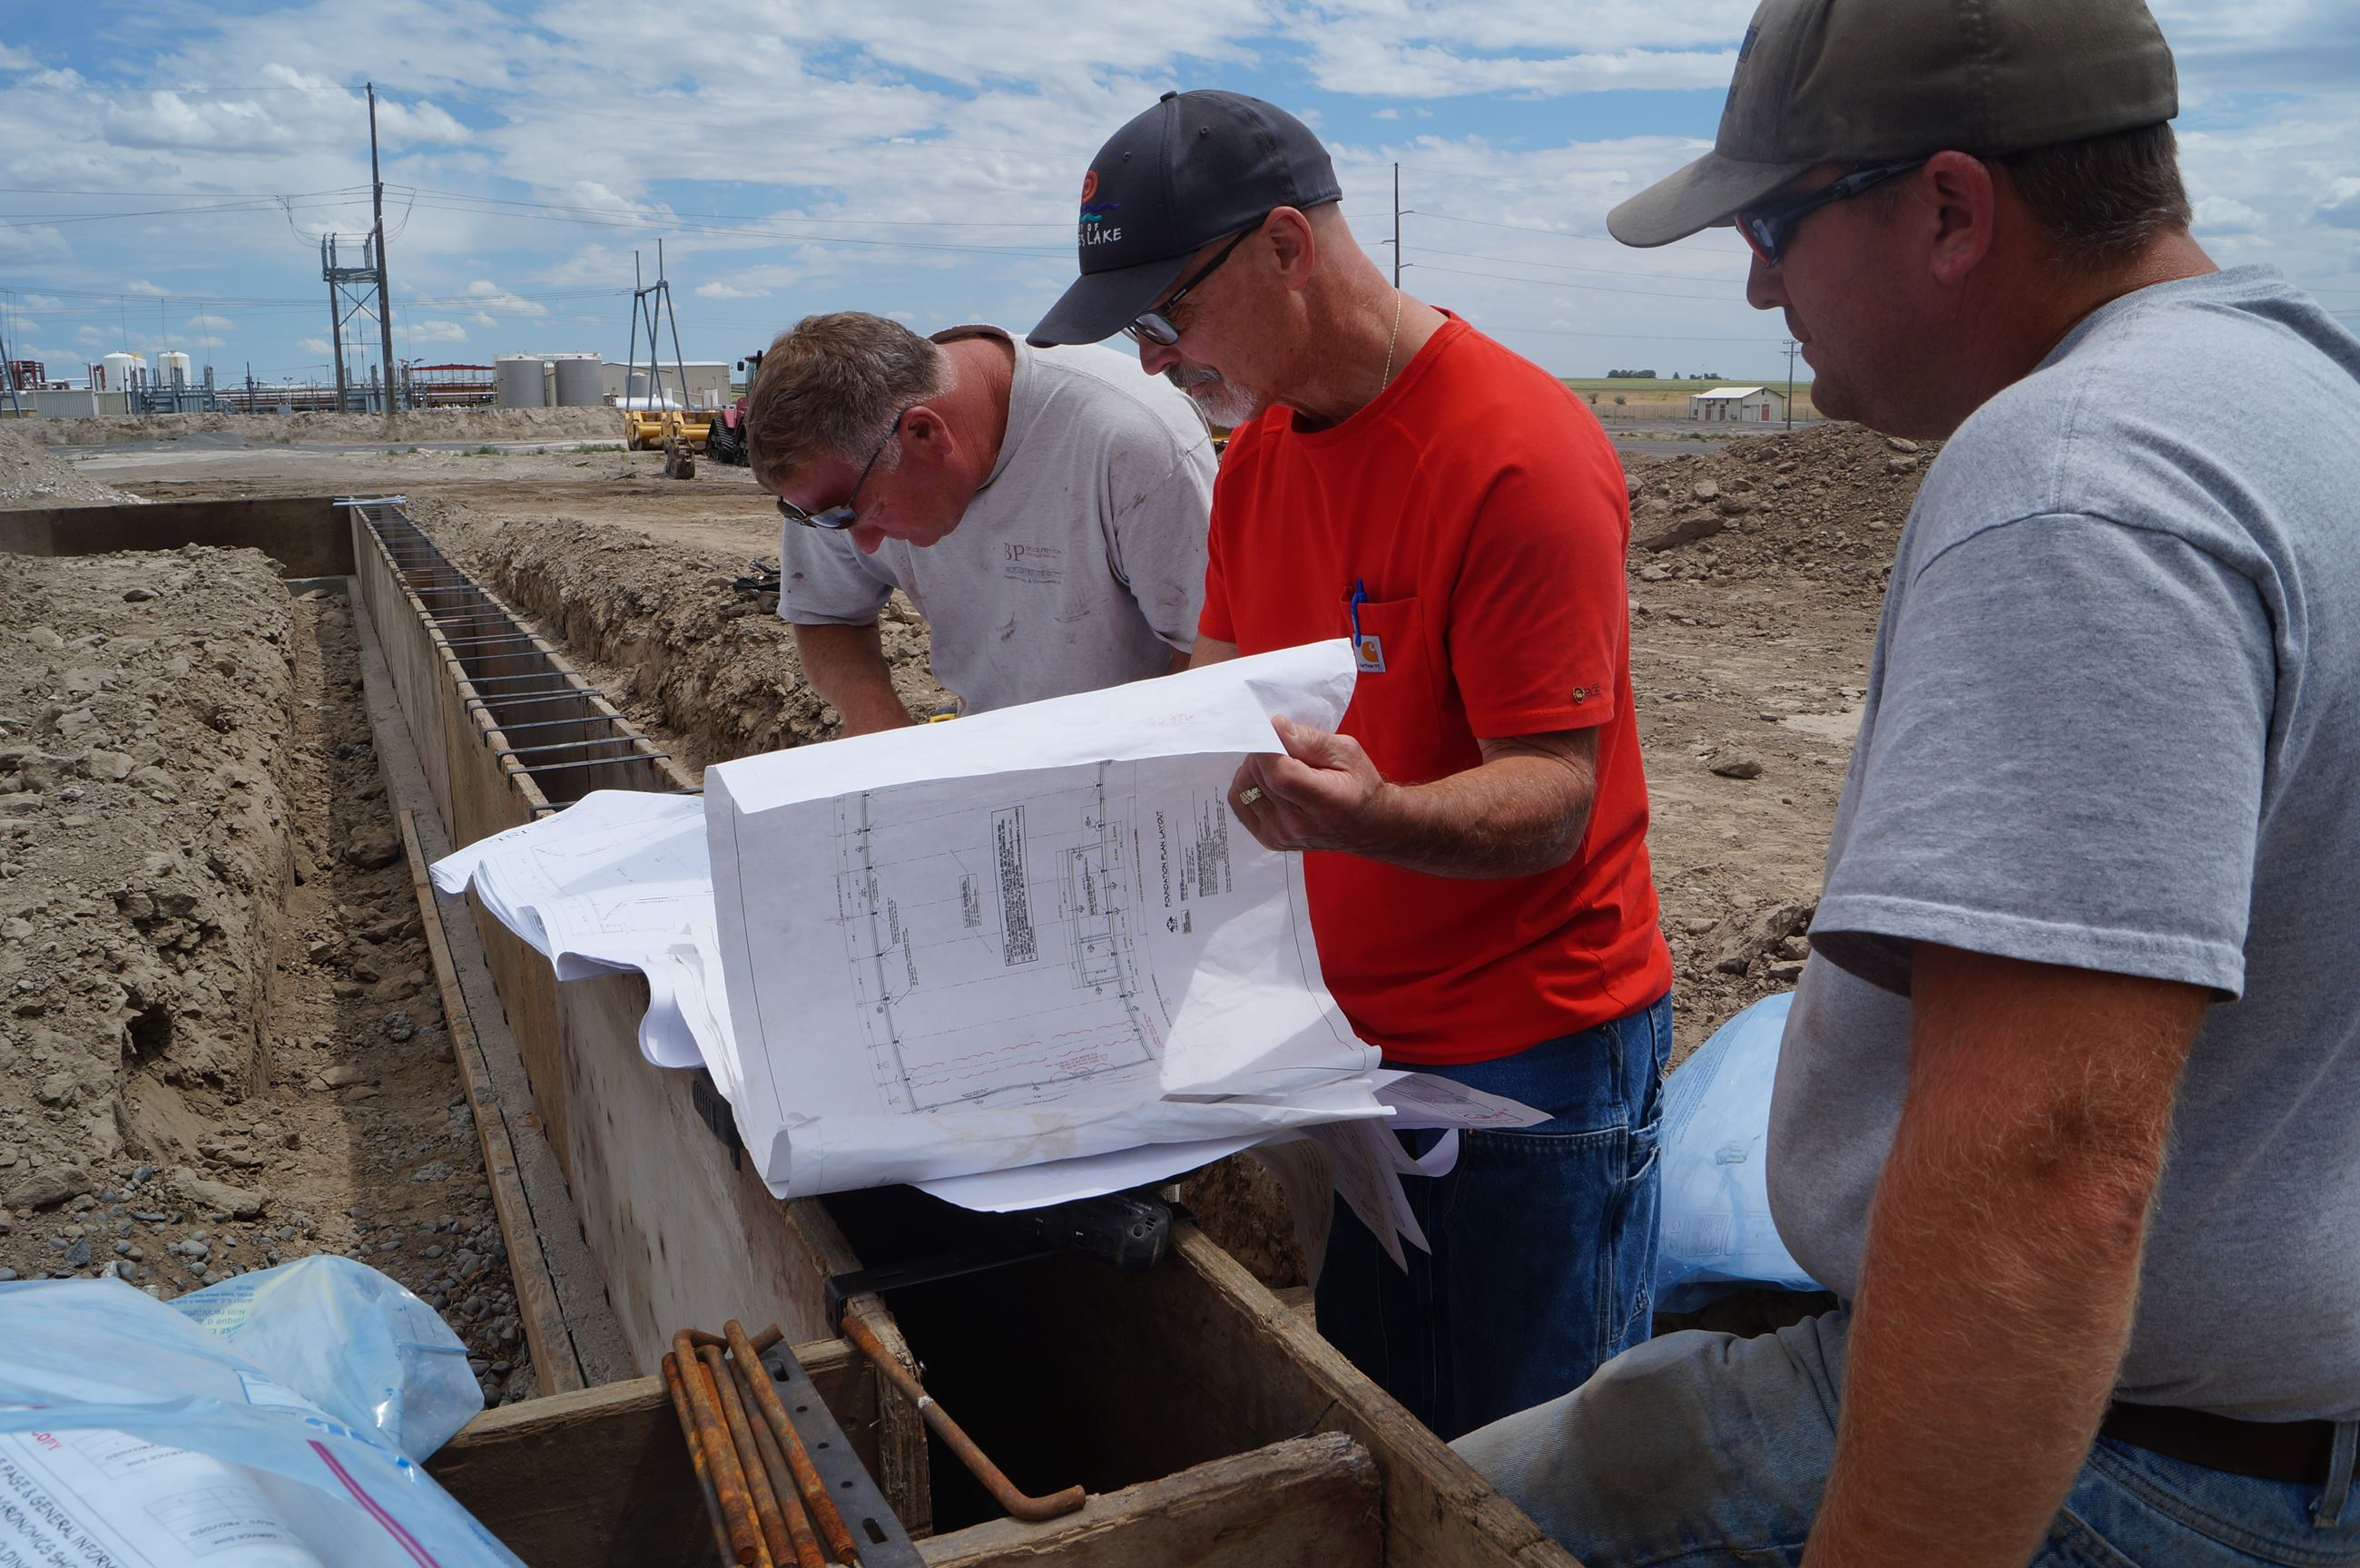 Building Inspector Robert Trumbull, center in red shirt, discusses plans at the Cascade Agronomics s